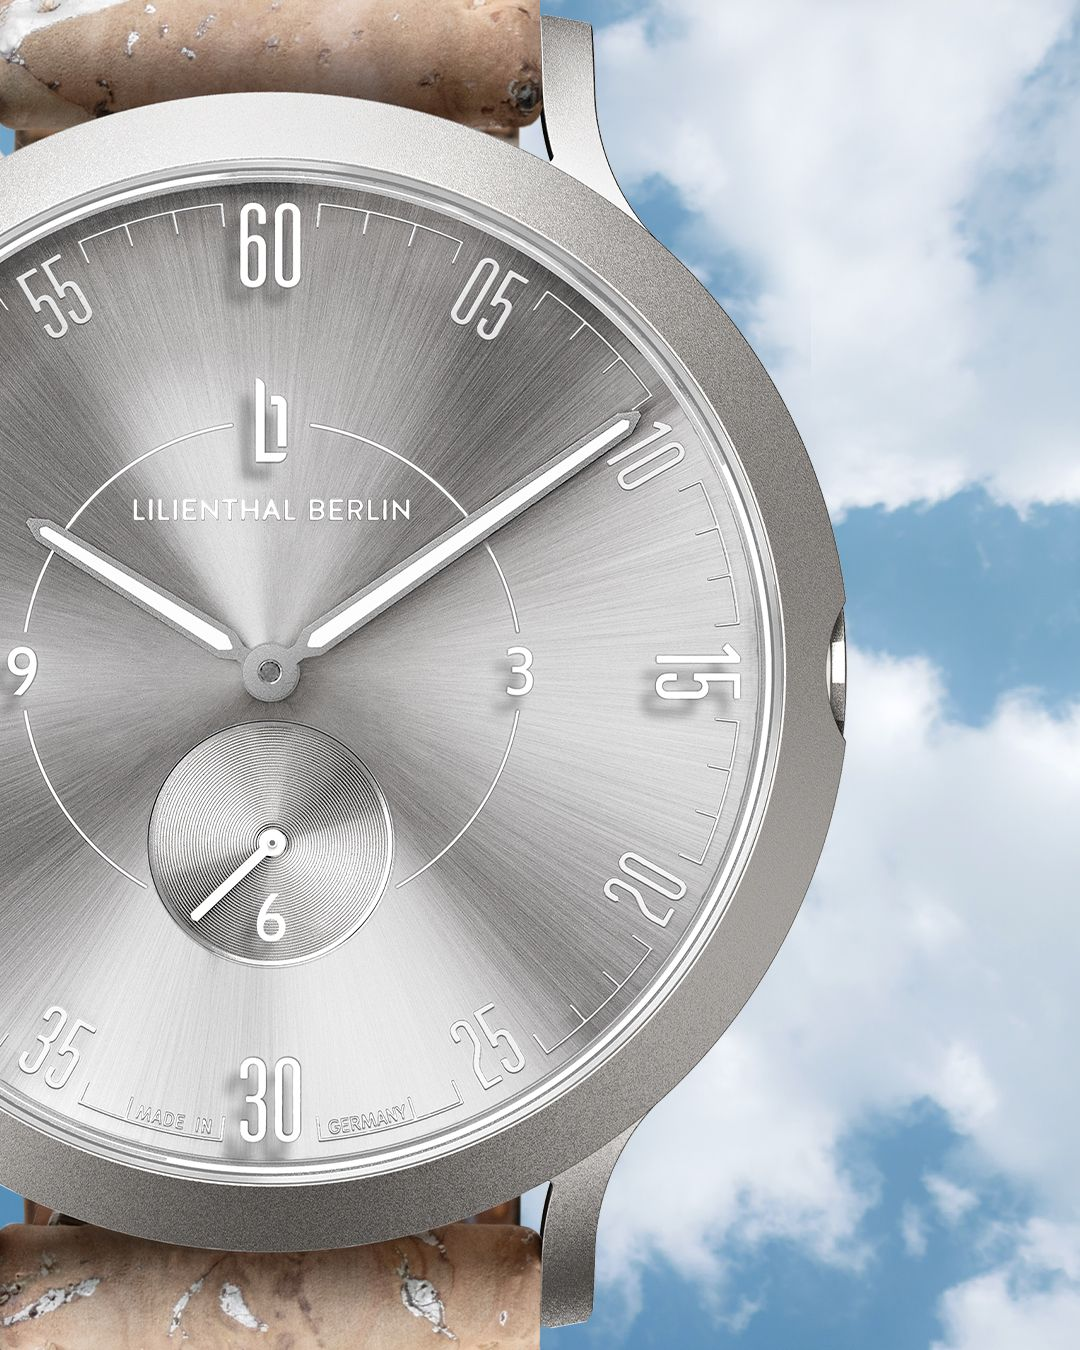 Discover the lightest member of Lilienthal Berlin's Elements Collection: the titanium L1 Air.